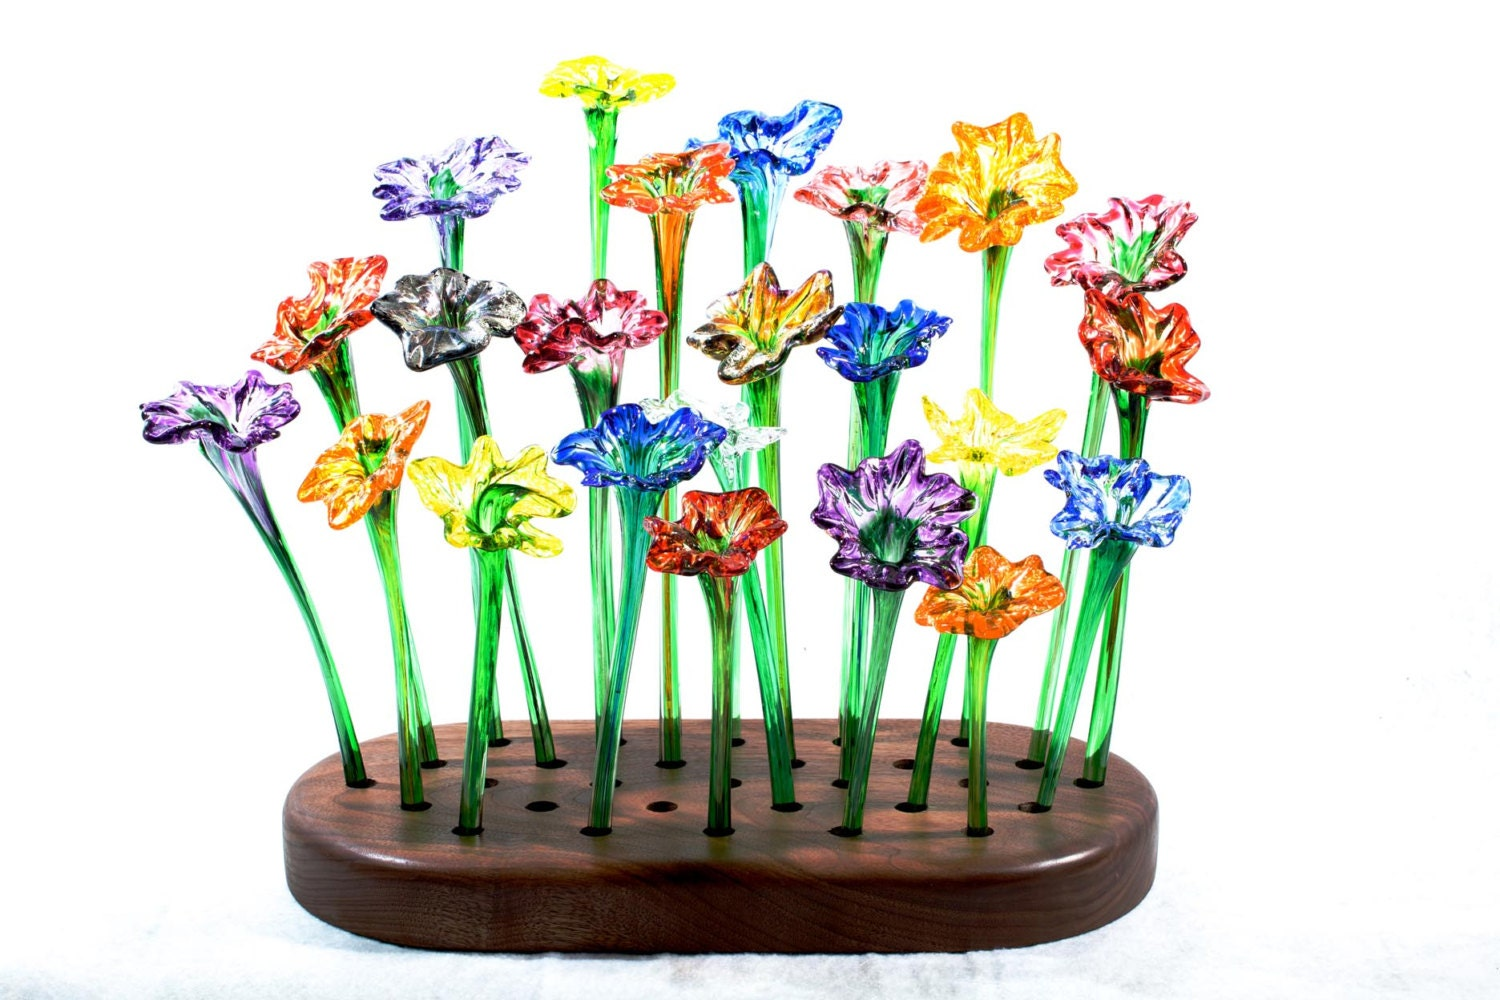 Colorful handblown glass flowers for Flowers made of glass